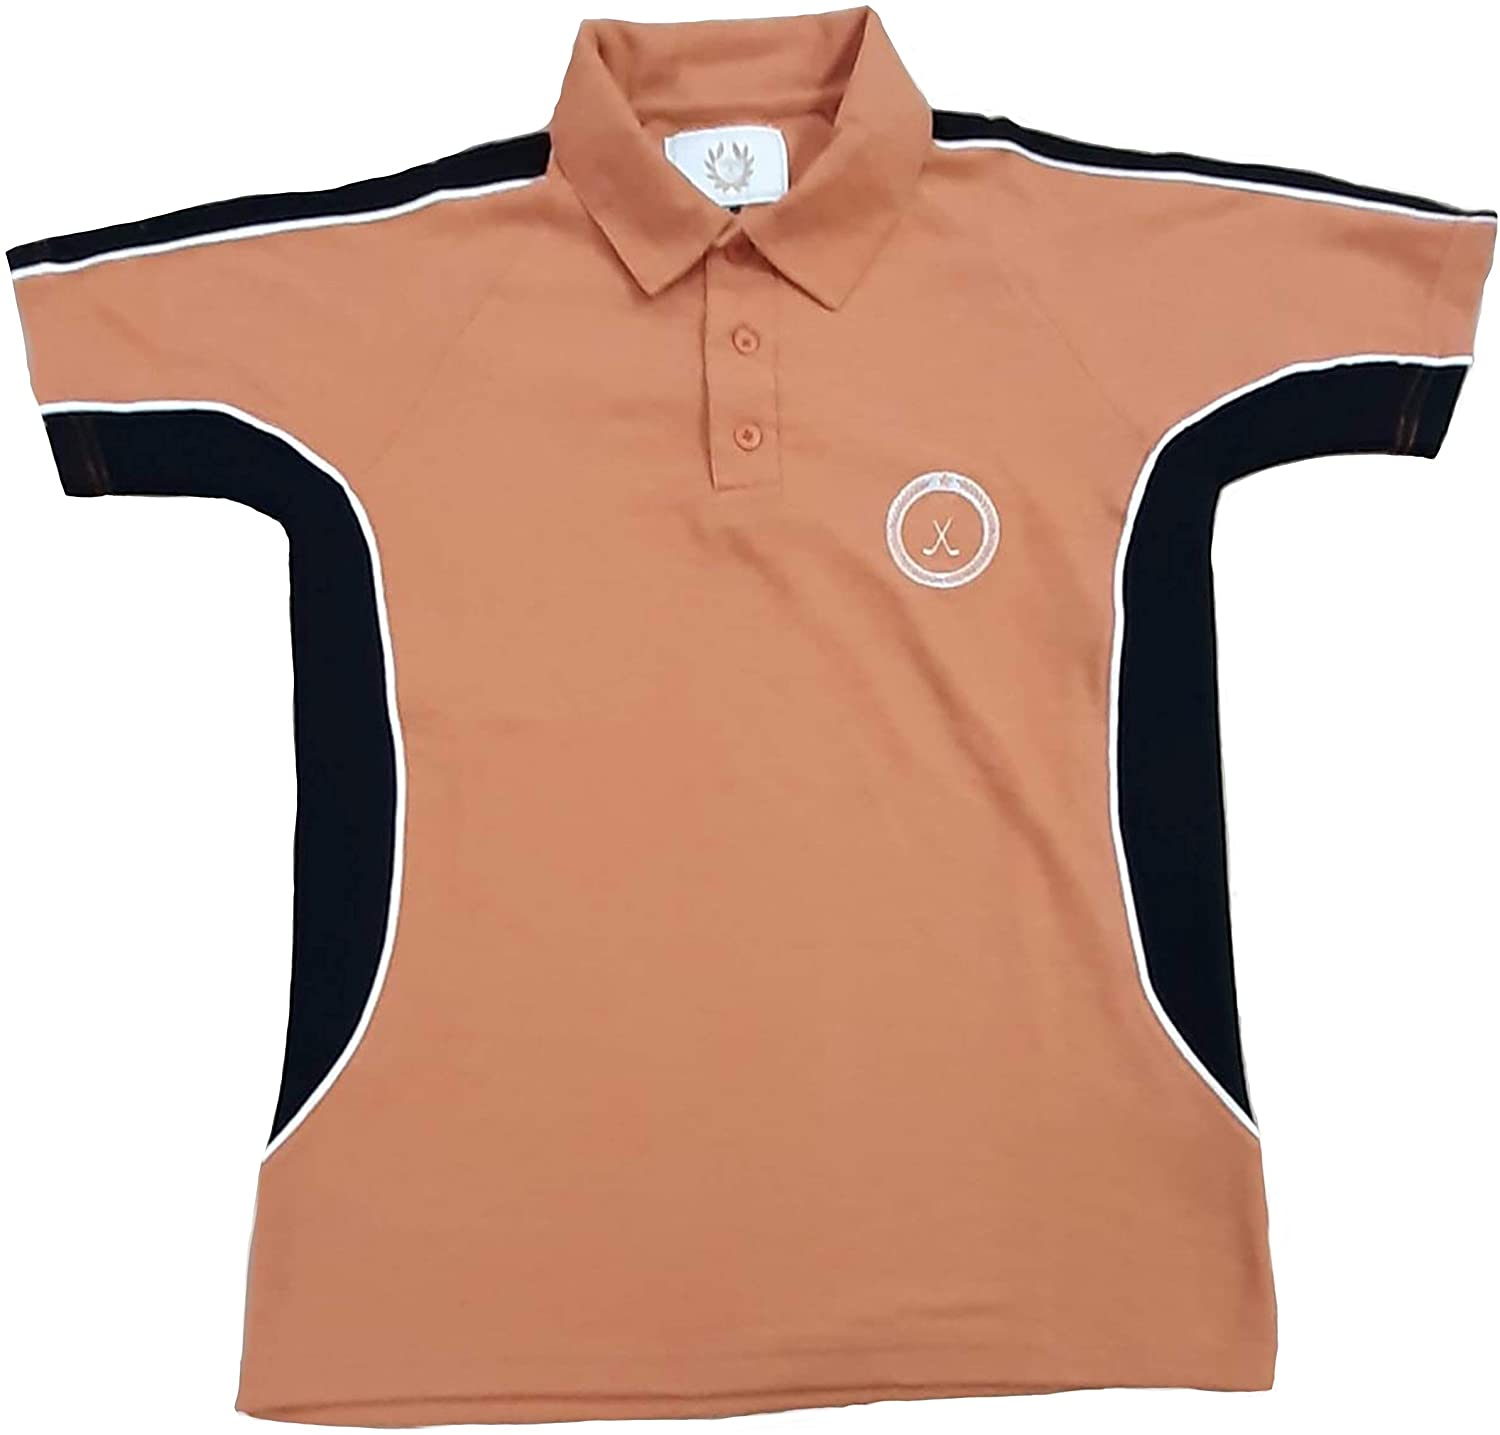 TEEPOLO Golf Shirt for Men - Regular Fit with Contrast Side and Sleeve Panels and Golf Clubs Embroidery Logo